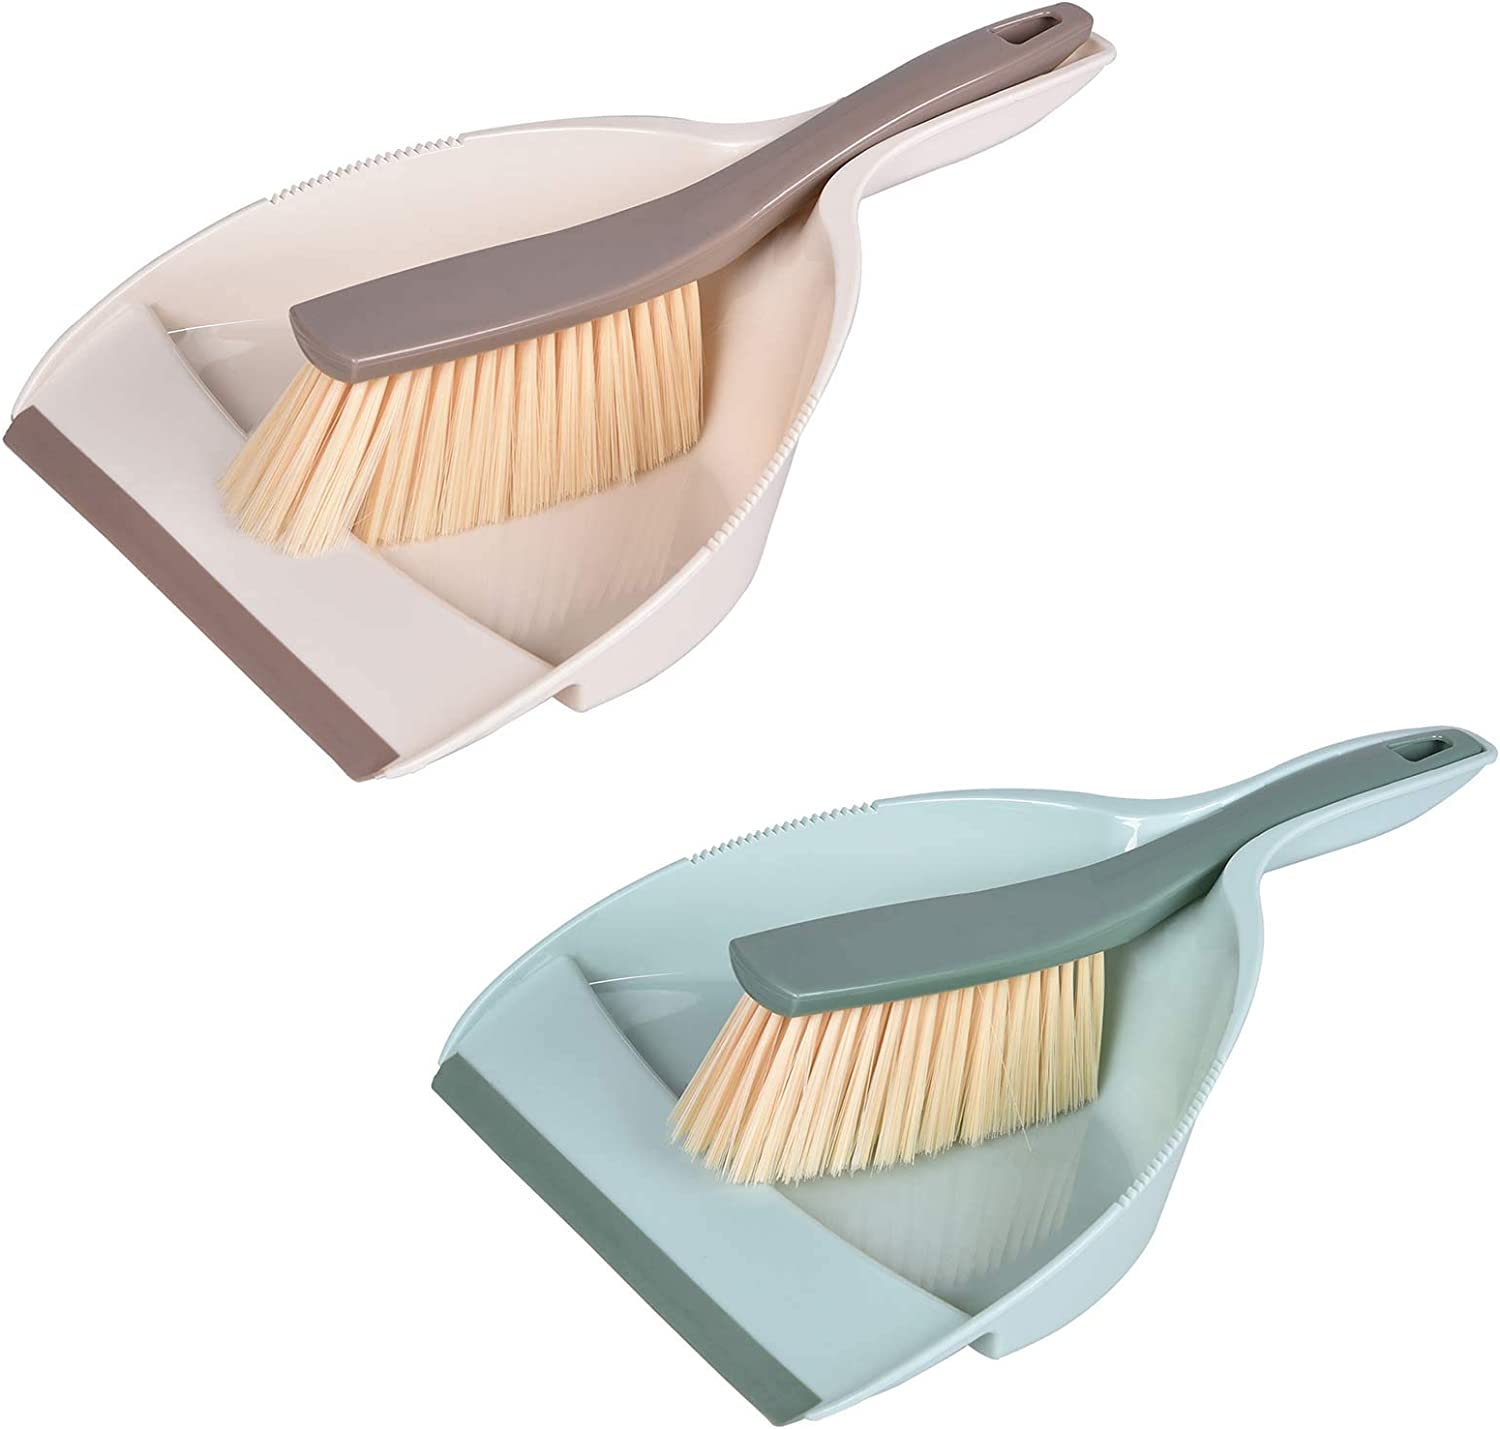 Mini Hand Dustpan and Brush, Multi-Functional Portable Snap-on Dustpan Set, Cleaning Tool for Floor, Desk, Sofa, Car 2-Pack Green and Beige : Health & Household